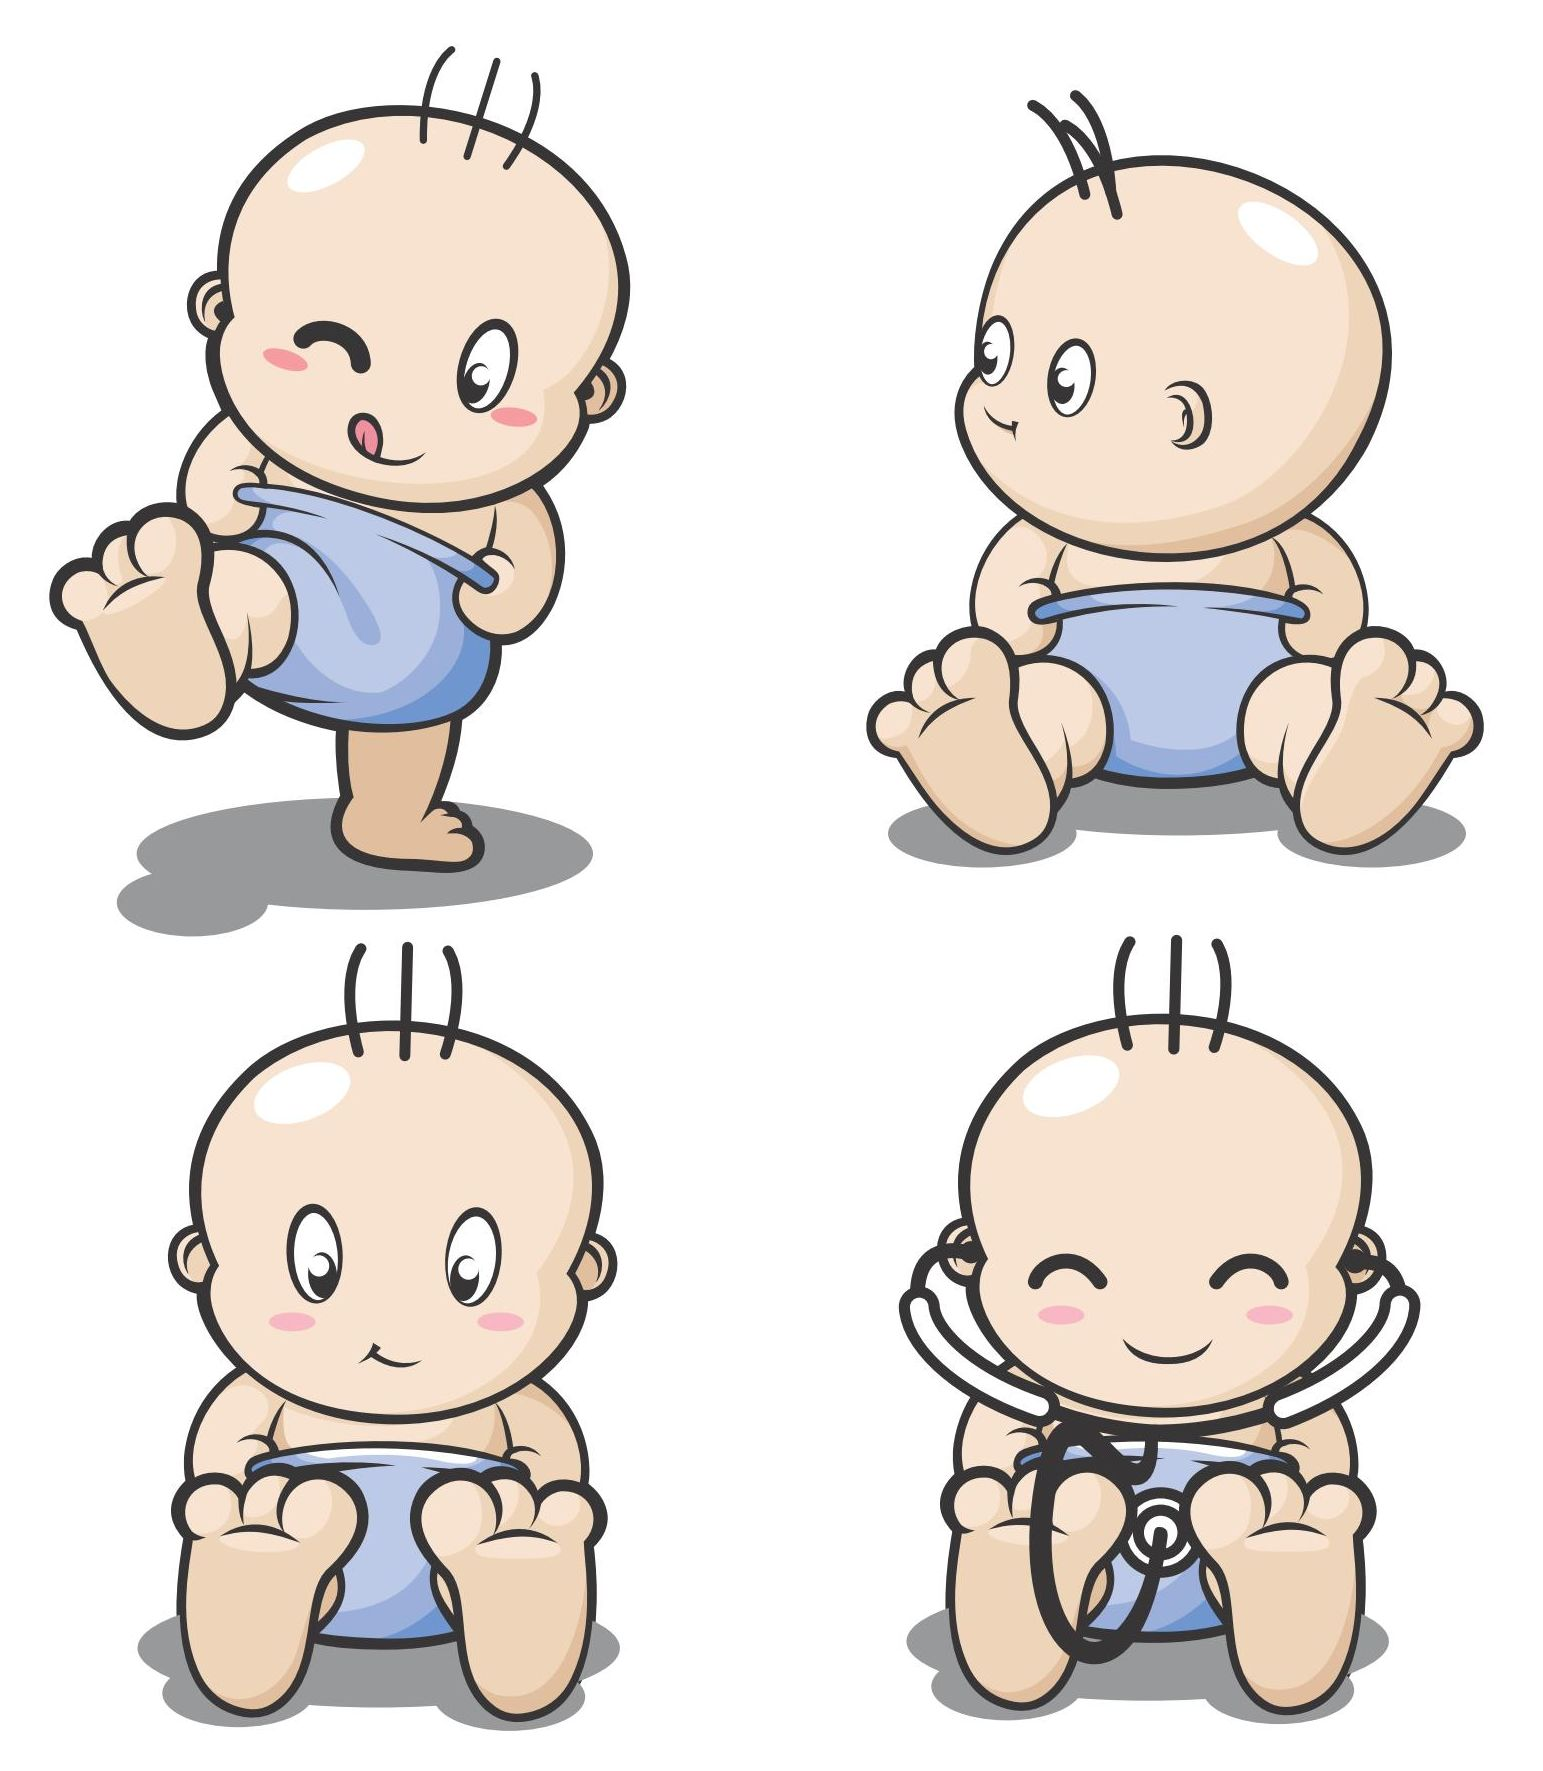 Cartoon Baby, Children, Kids Vector EPS Free Download, Logo, Icons ...: cliparts.co/cartoon-baby-pic